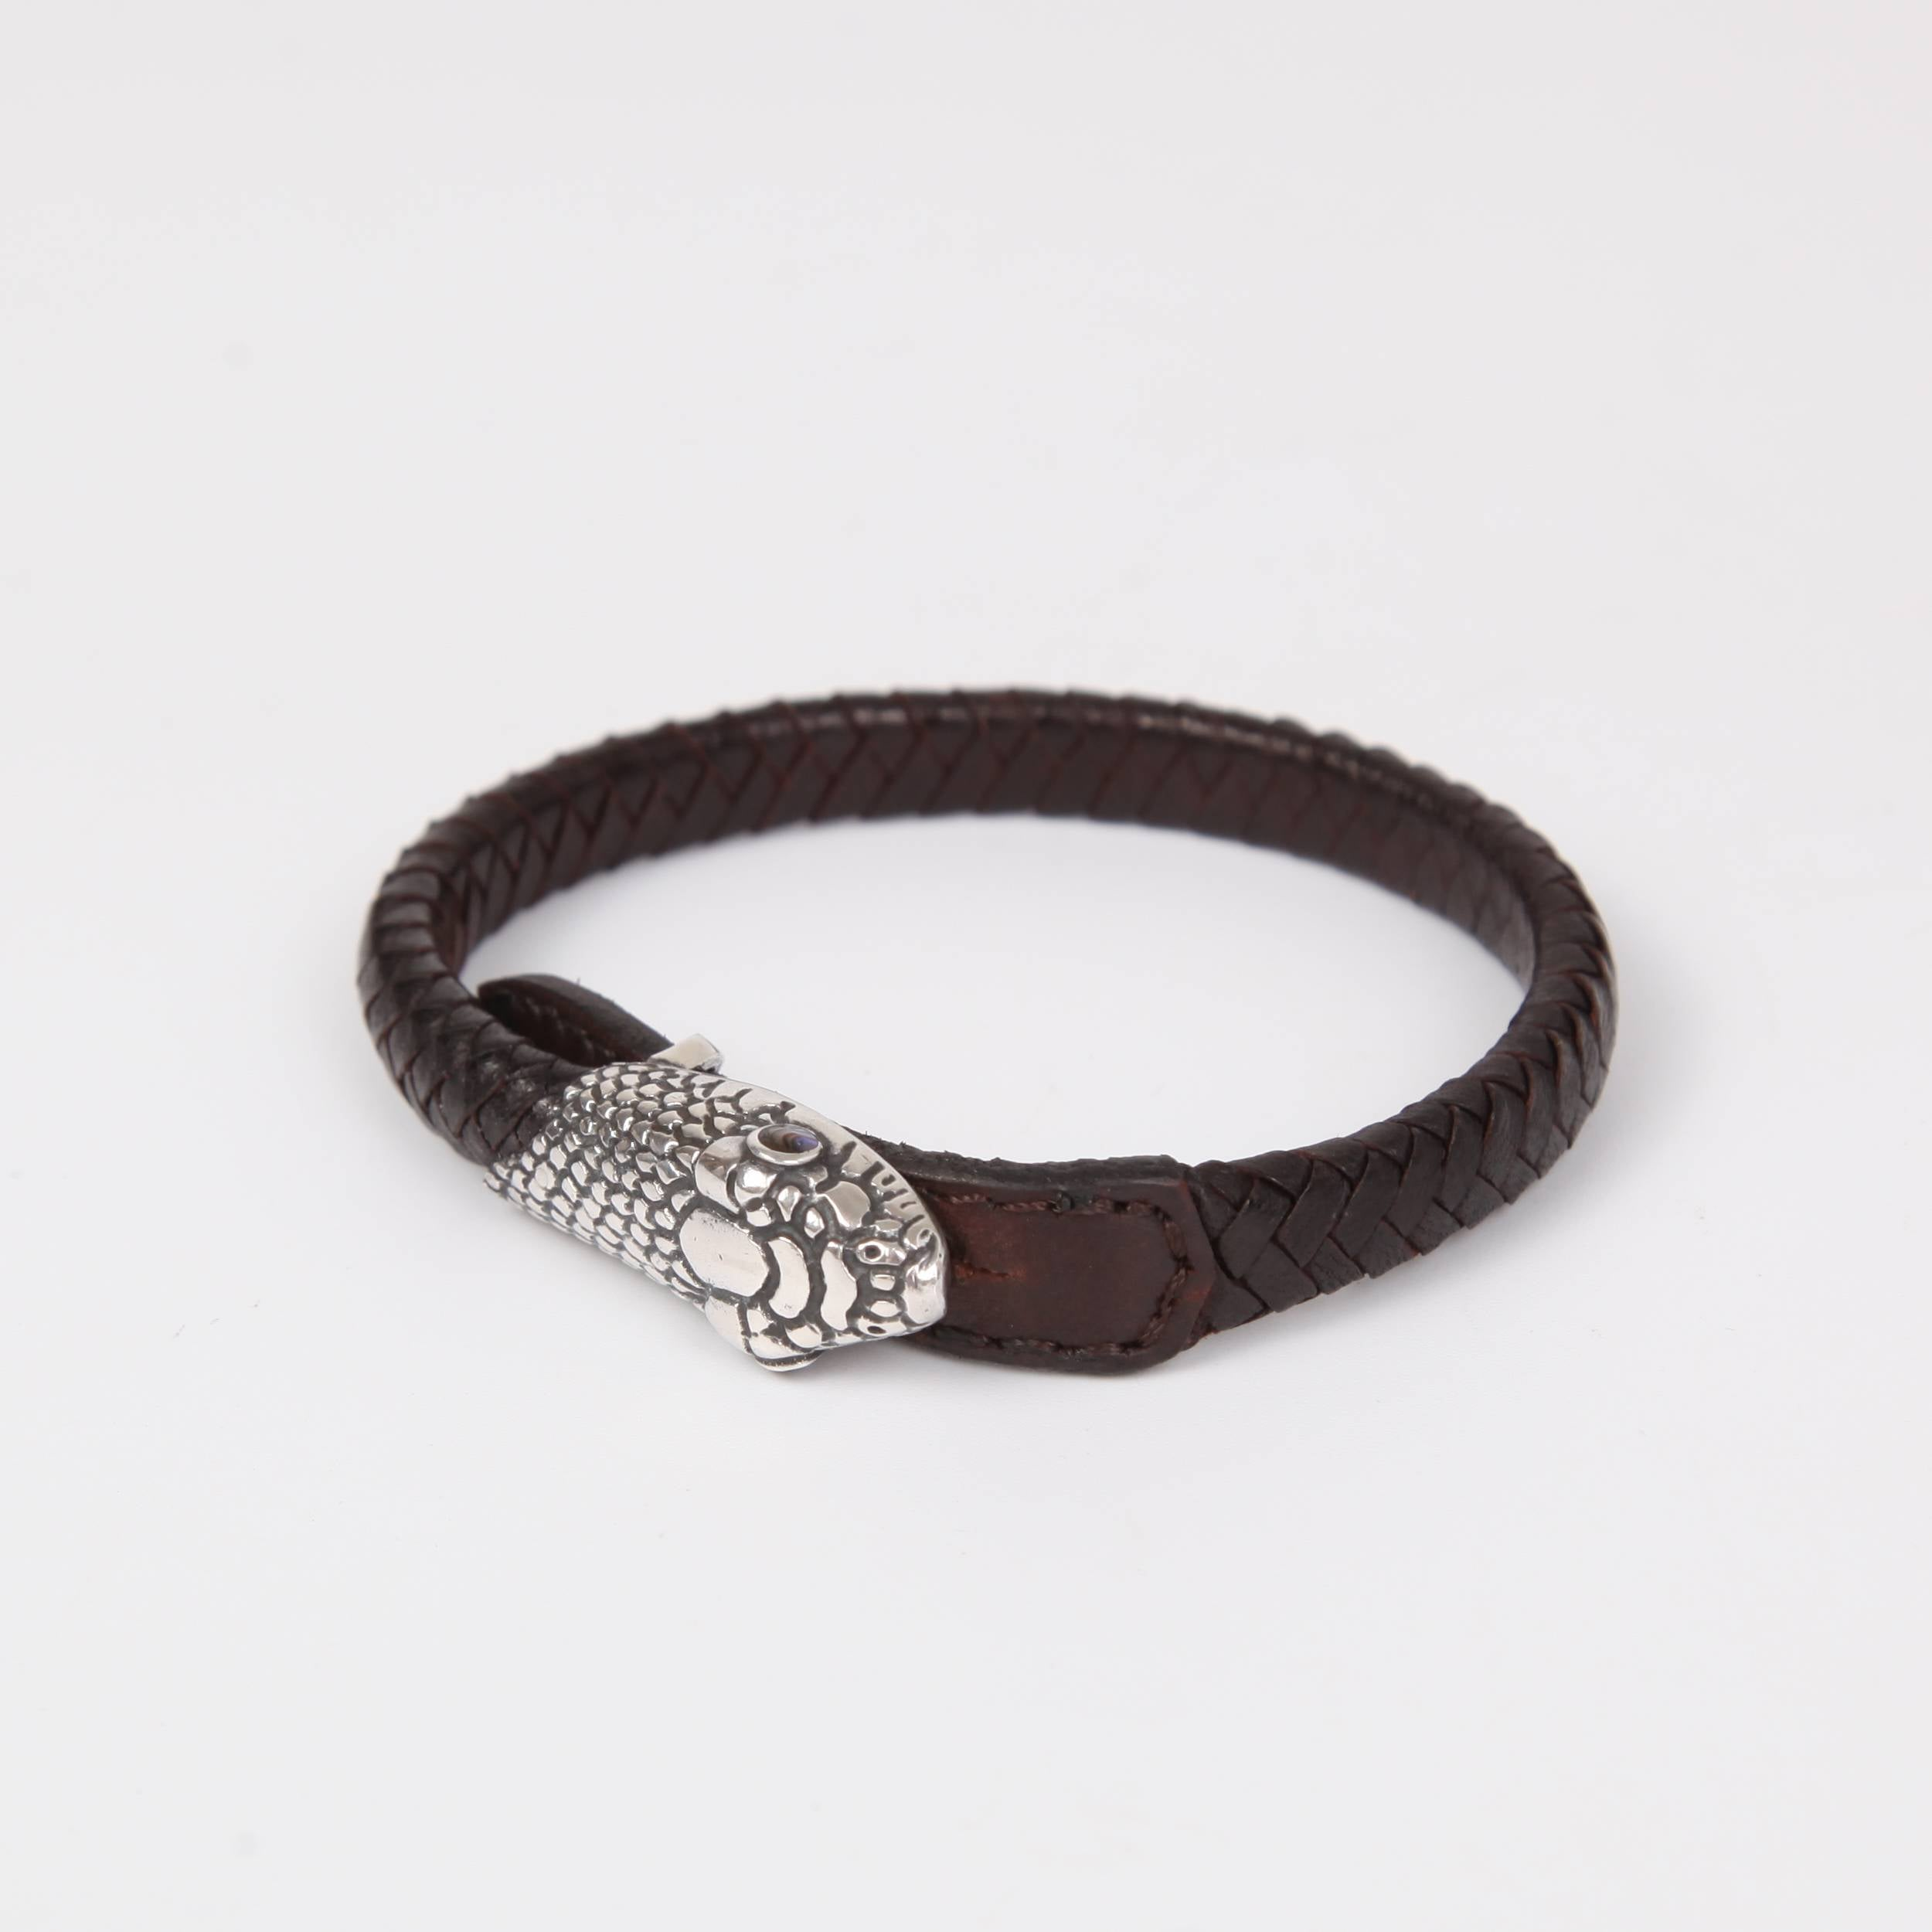 Leather (Goat skin) Bracelet with Sterling Silver Snake Head